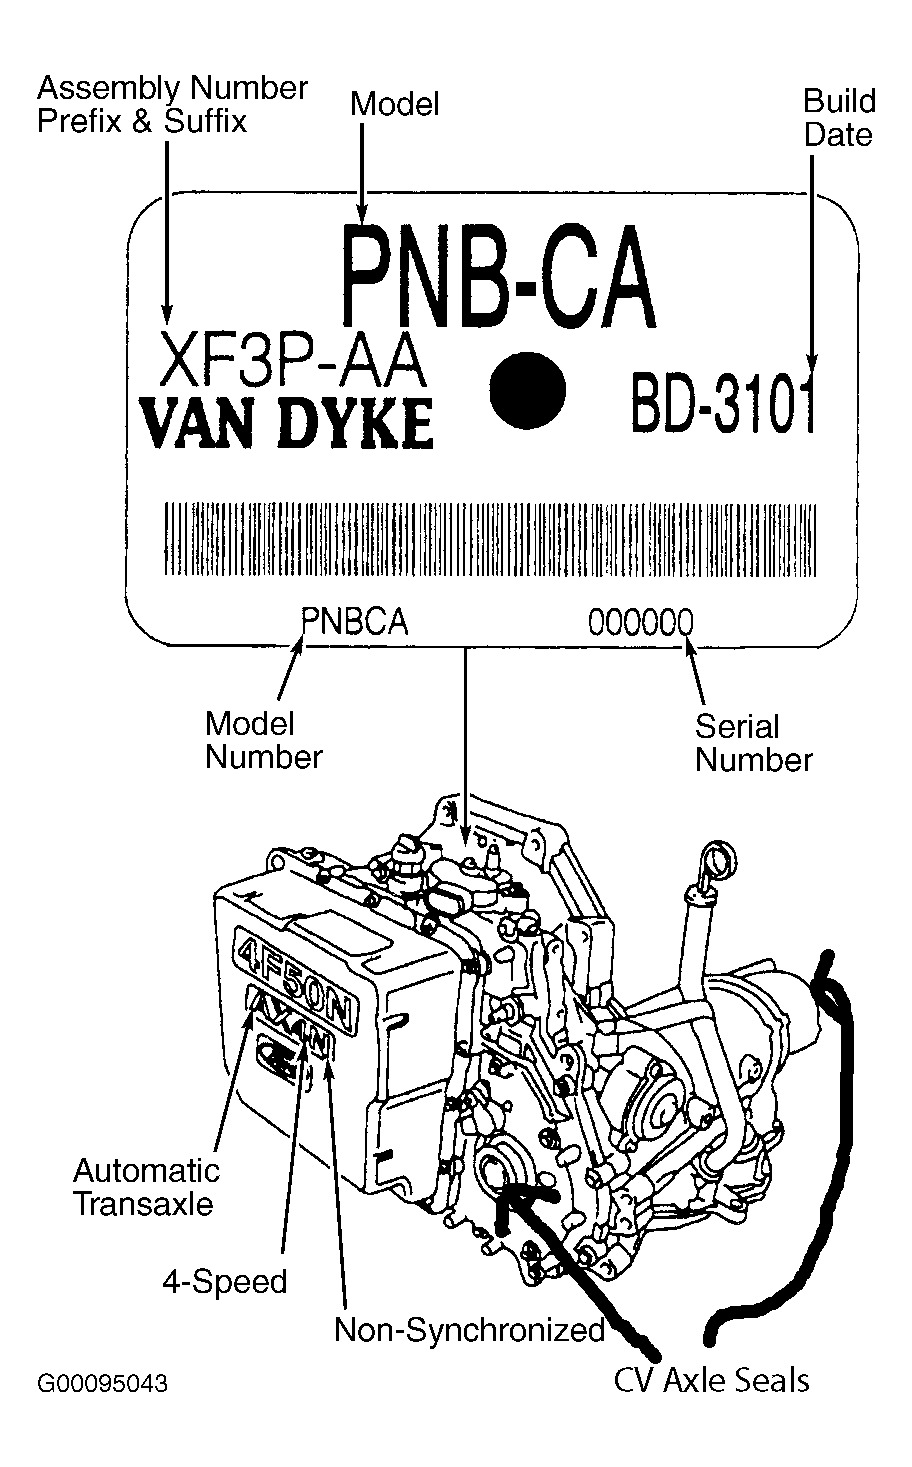 2002 Ford Taurus Transmission Fluid Is Leaking: Under the